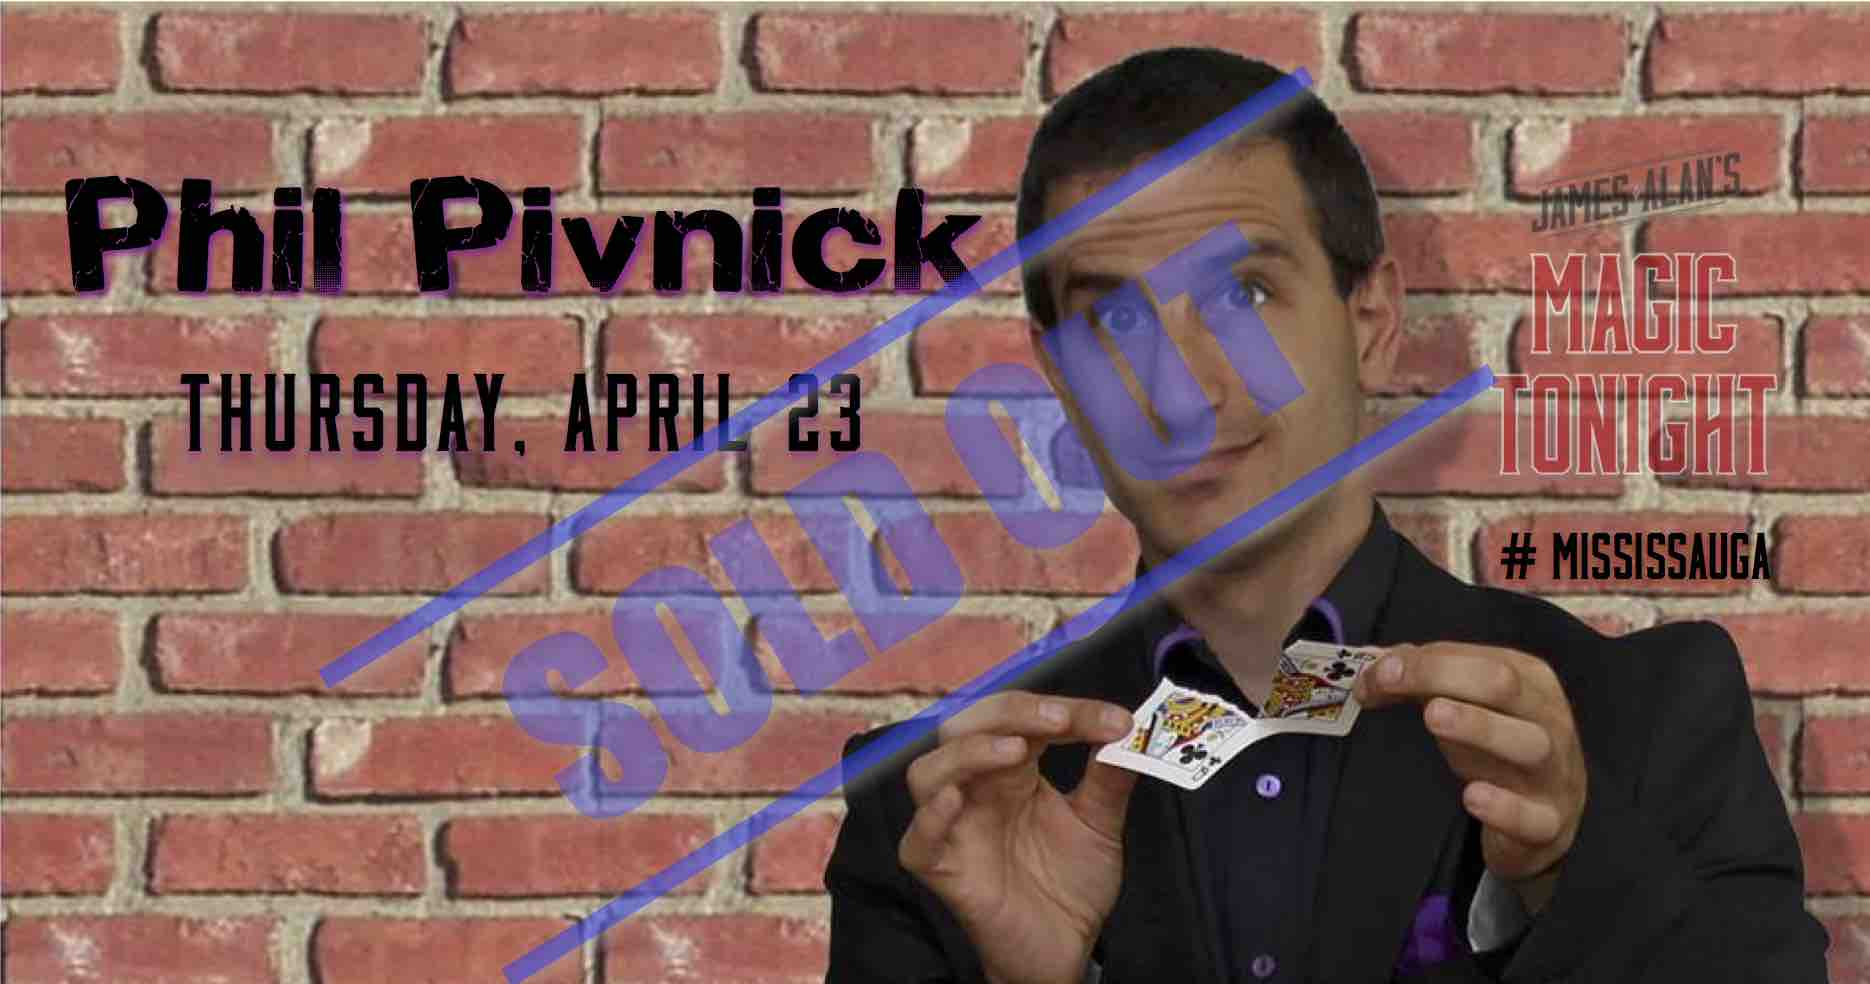 Apr 23 Phil Pivnick Sold out